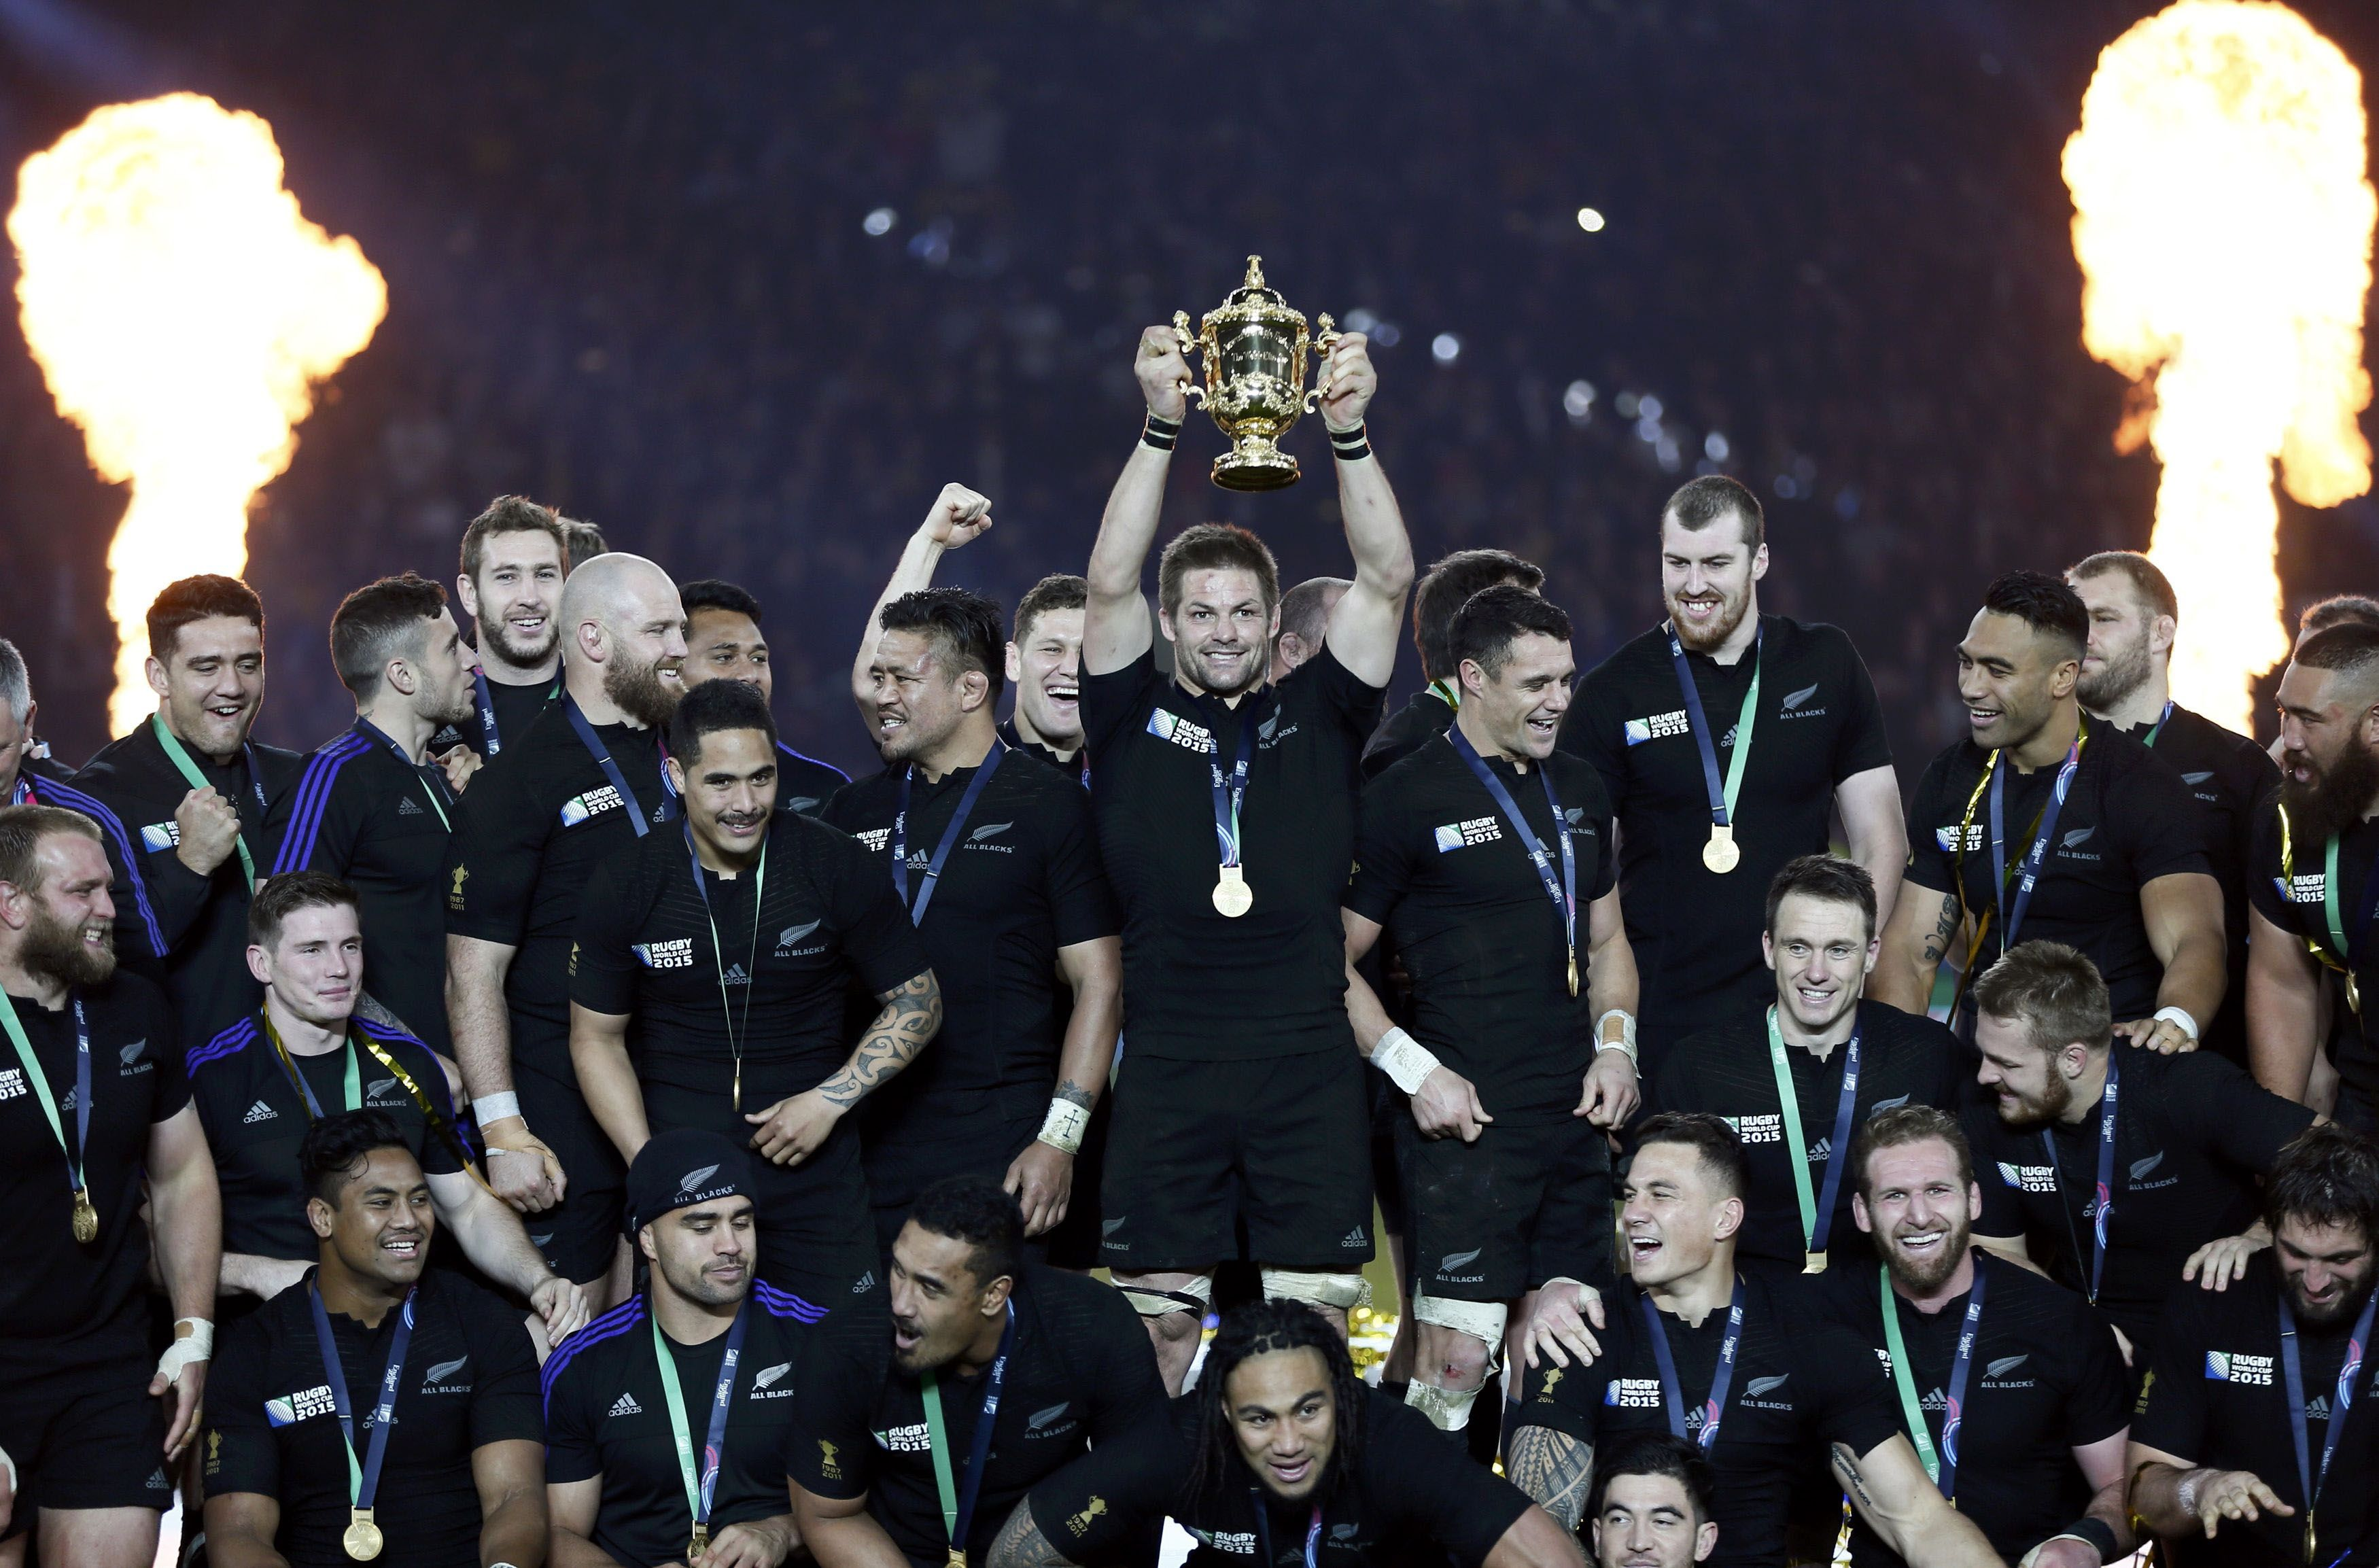 Les all blacks d finitivement seuls au sommet de la - Resultats coupe du monde de rugby 2015 ...